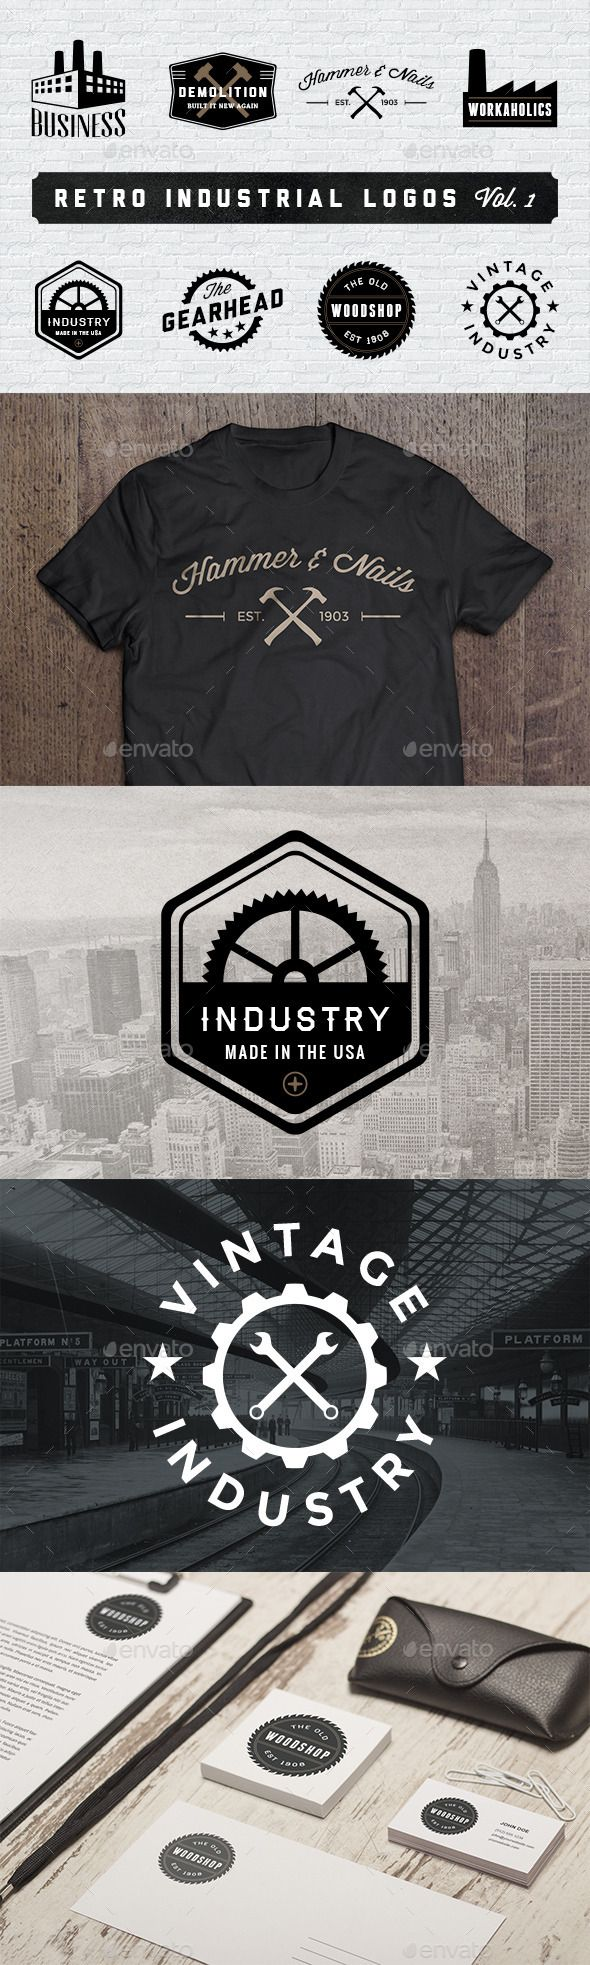 Retro Industrial Logos Tempalte #logos #design Download: http://graphicriver.net/item/retro-industrial-logos-volume-1/11685533?ref=ksioks